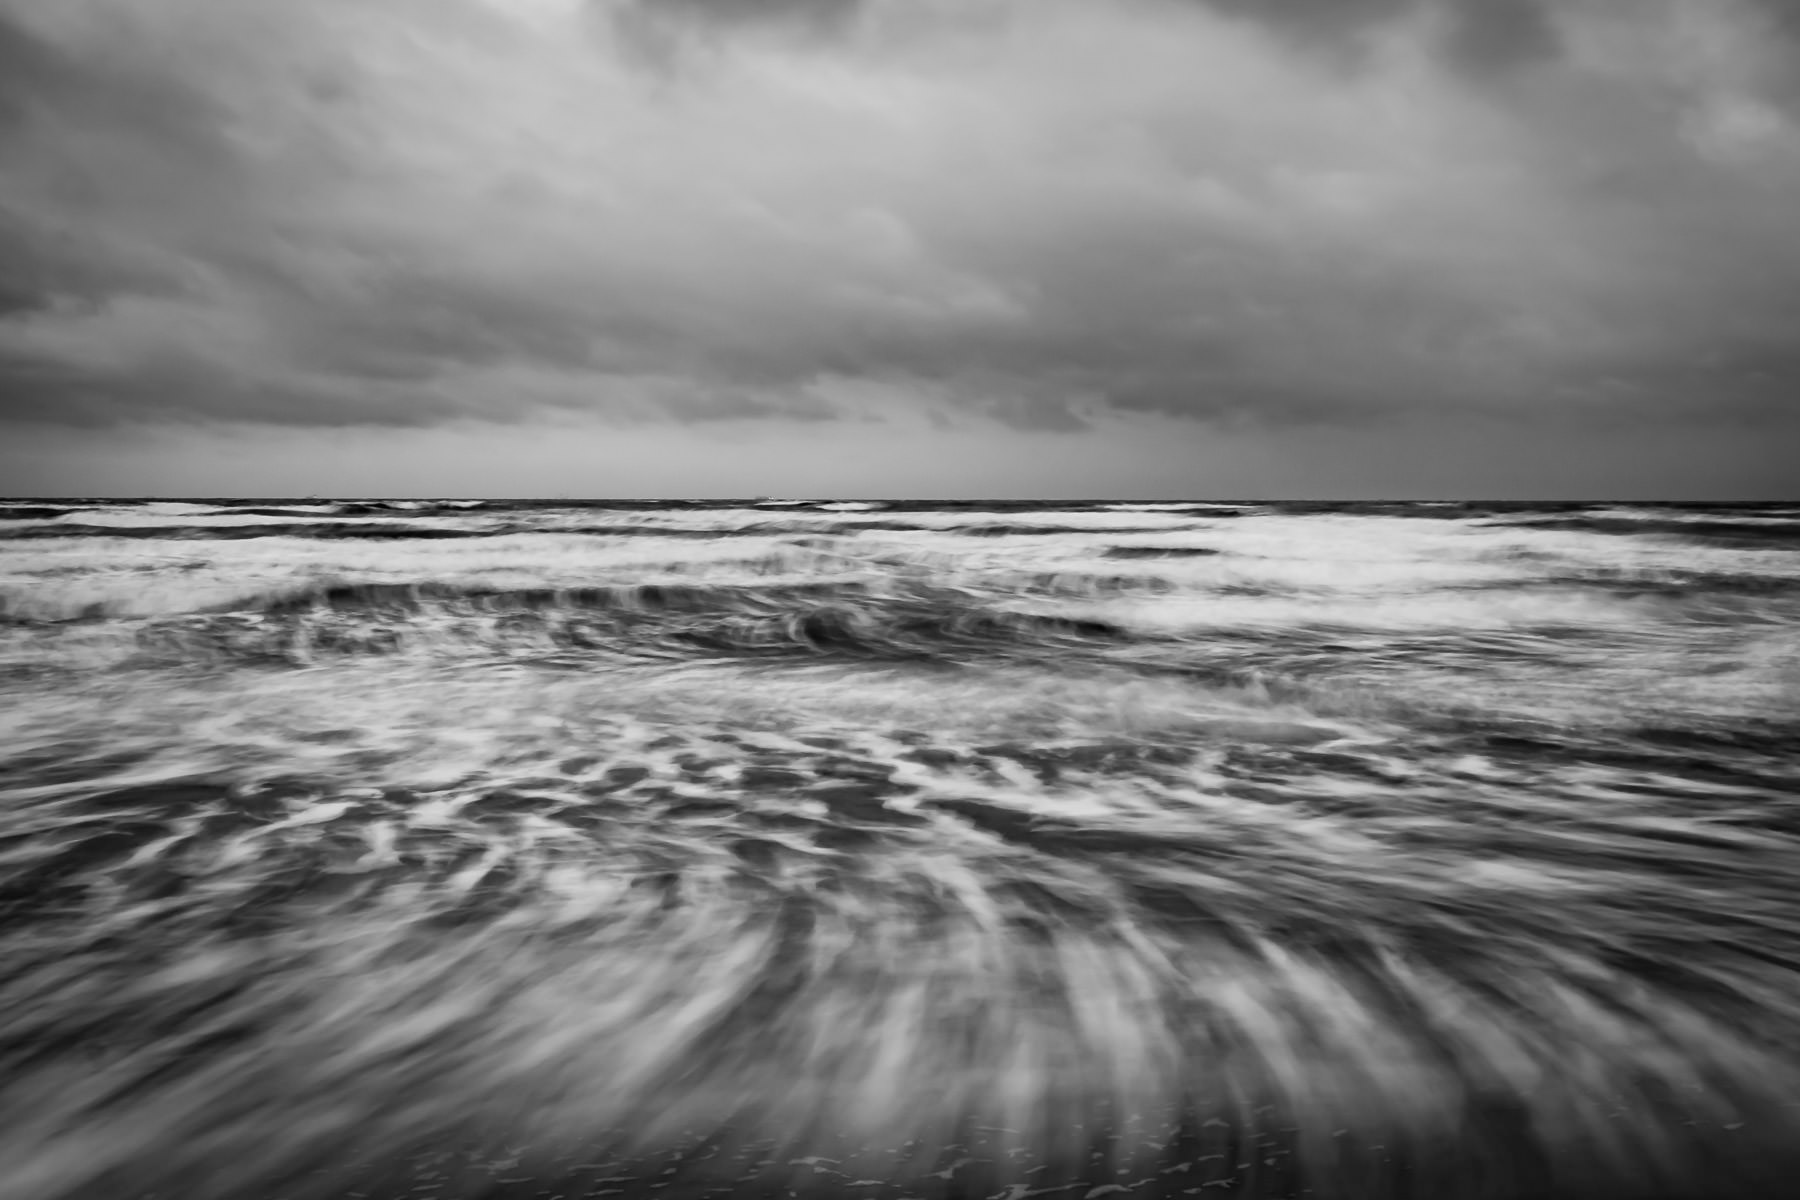 A long-exposure photo smooths the dynamic Gulf of Mexico along the Galveston, Texas, beach.